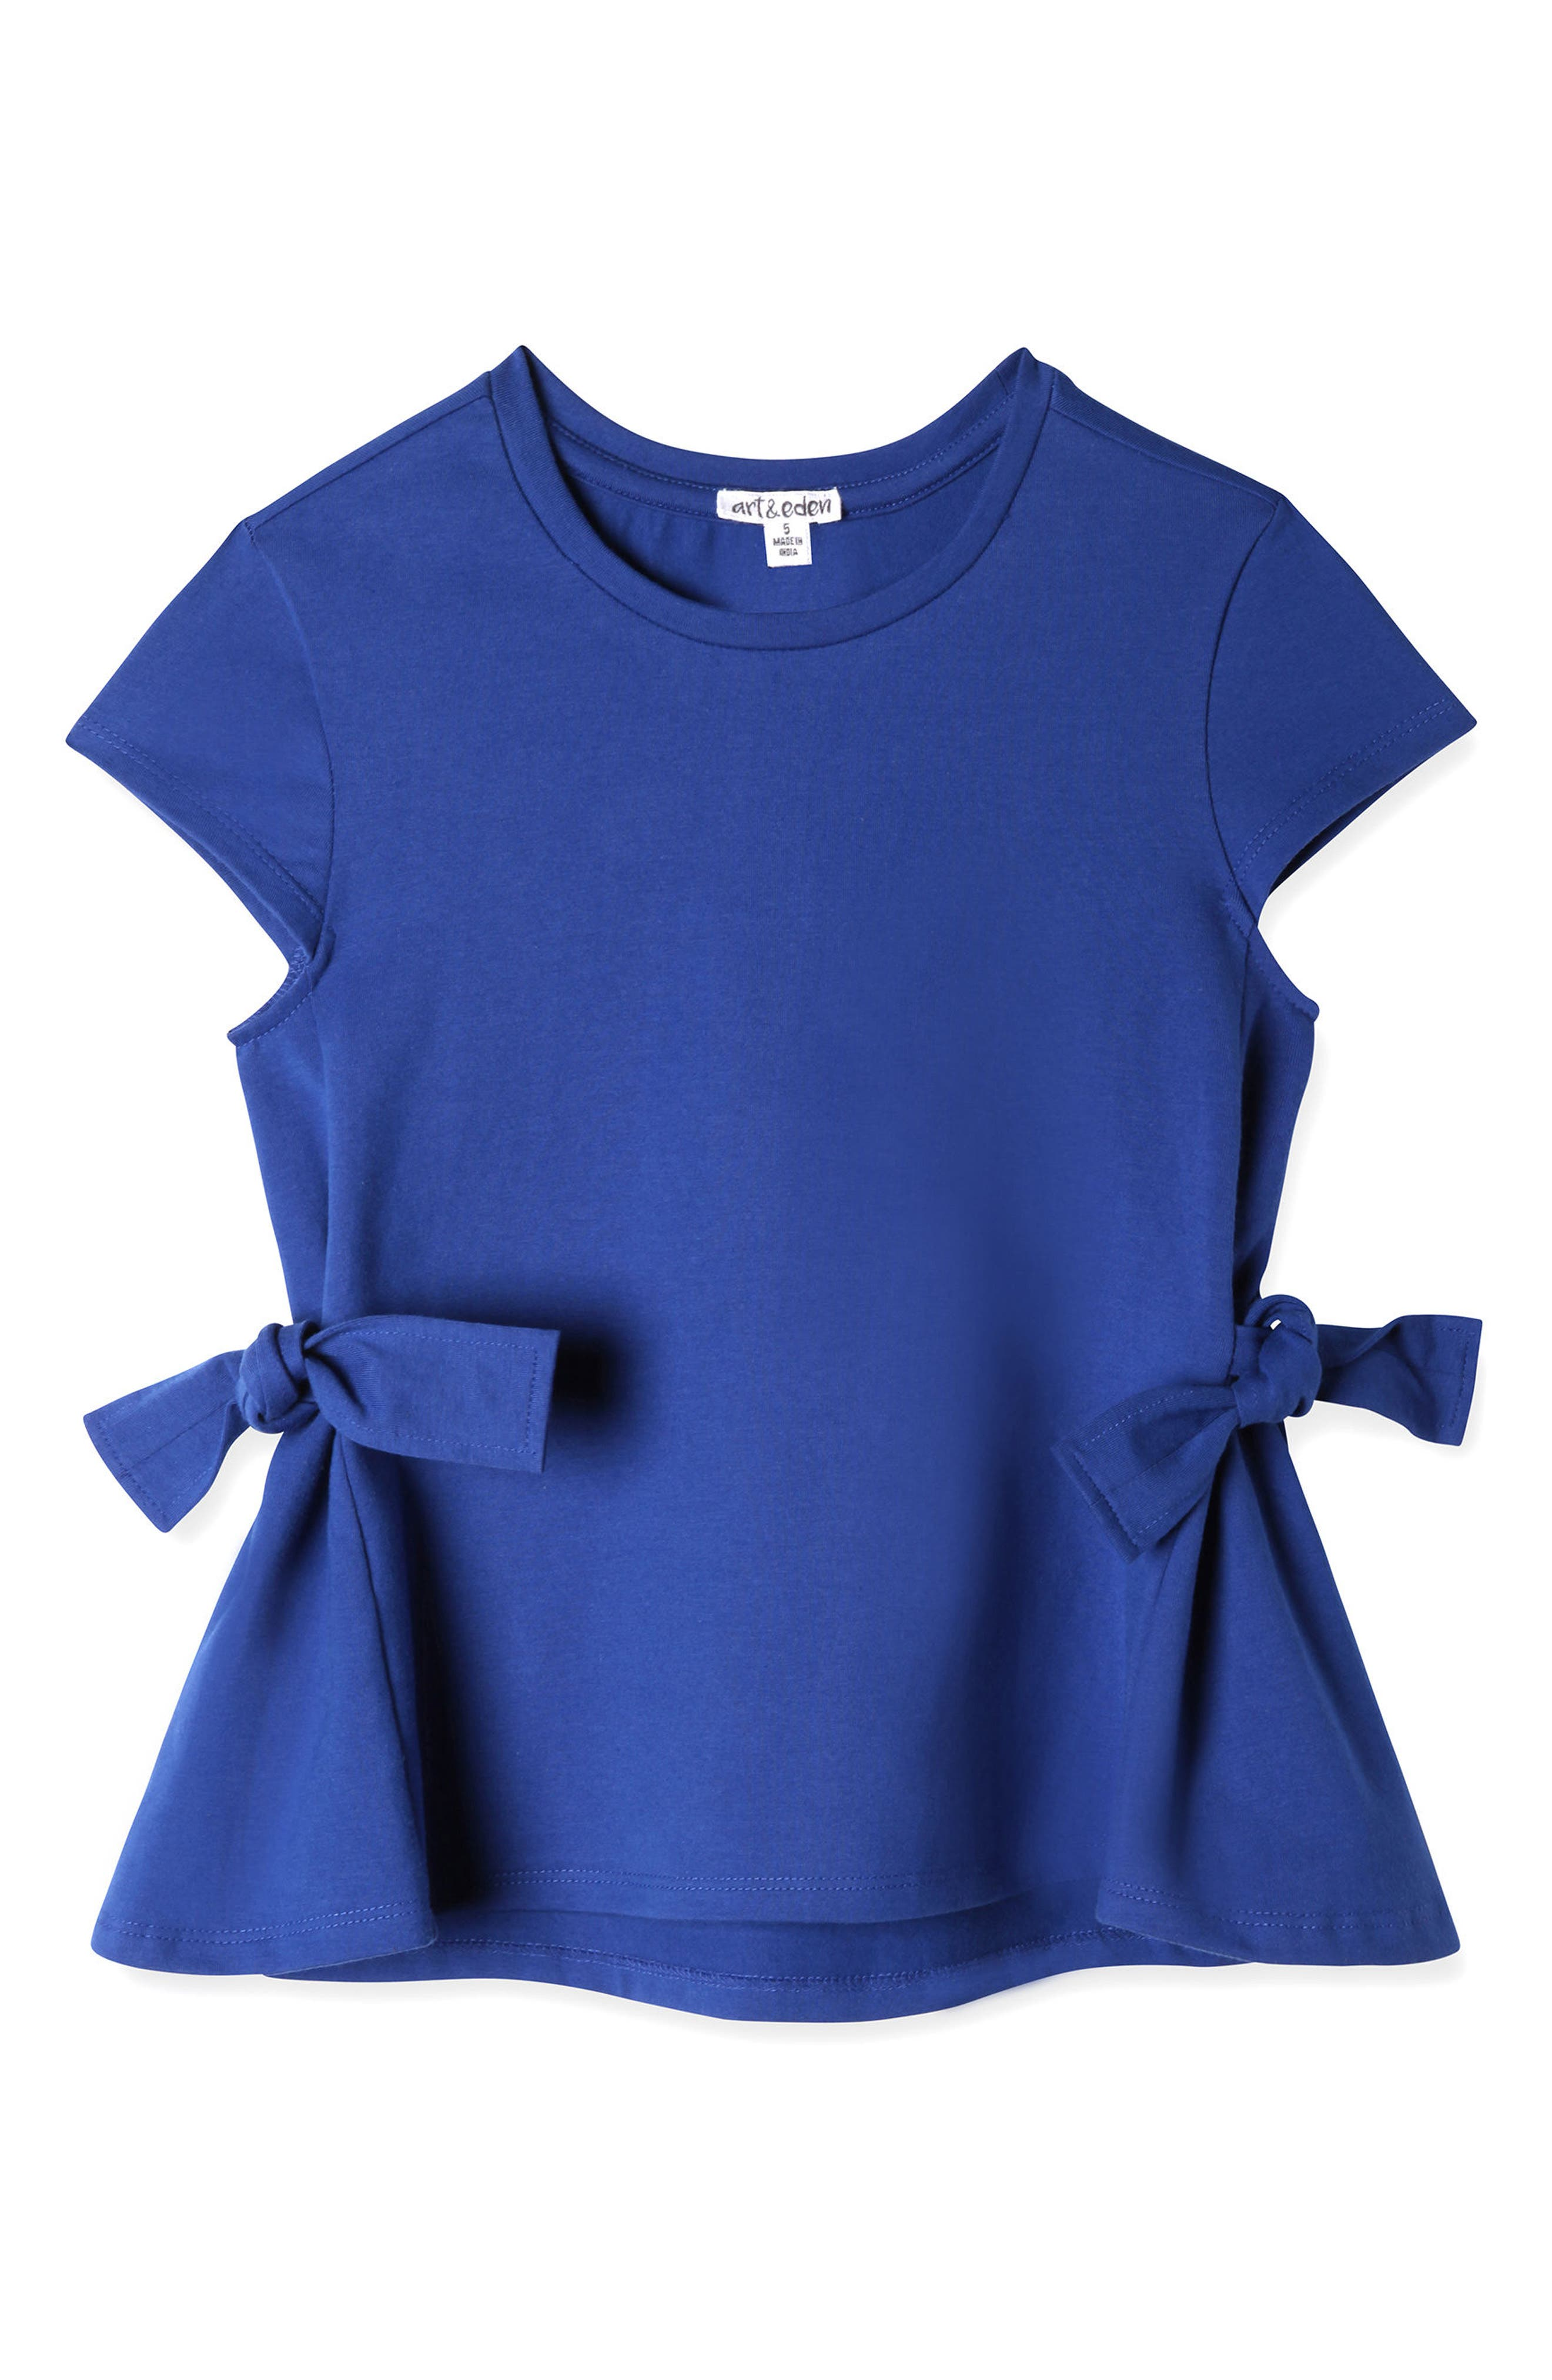 Art & Eden Mackenzie Top (Toddler Girls & Little Girls)